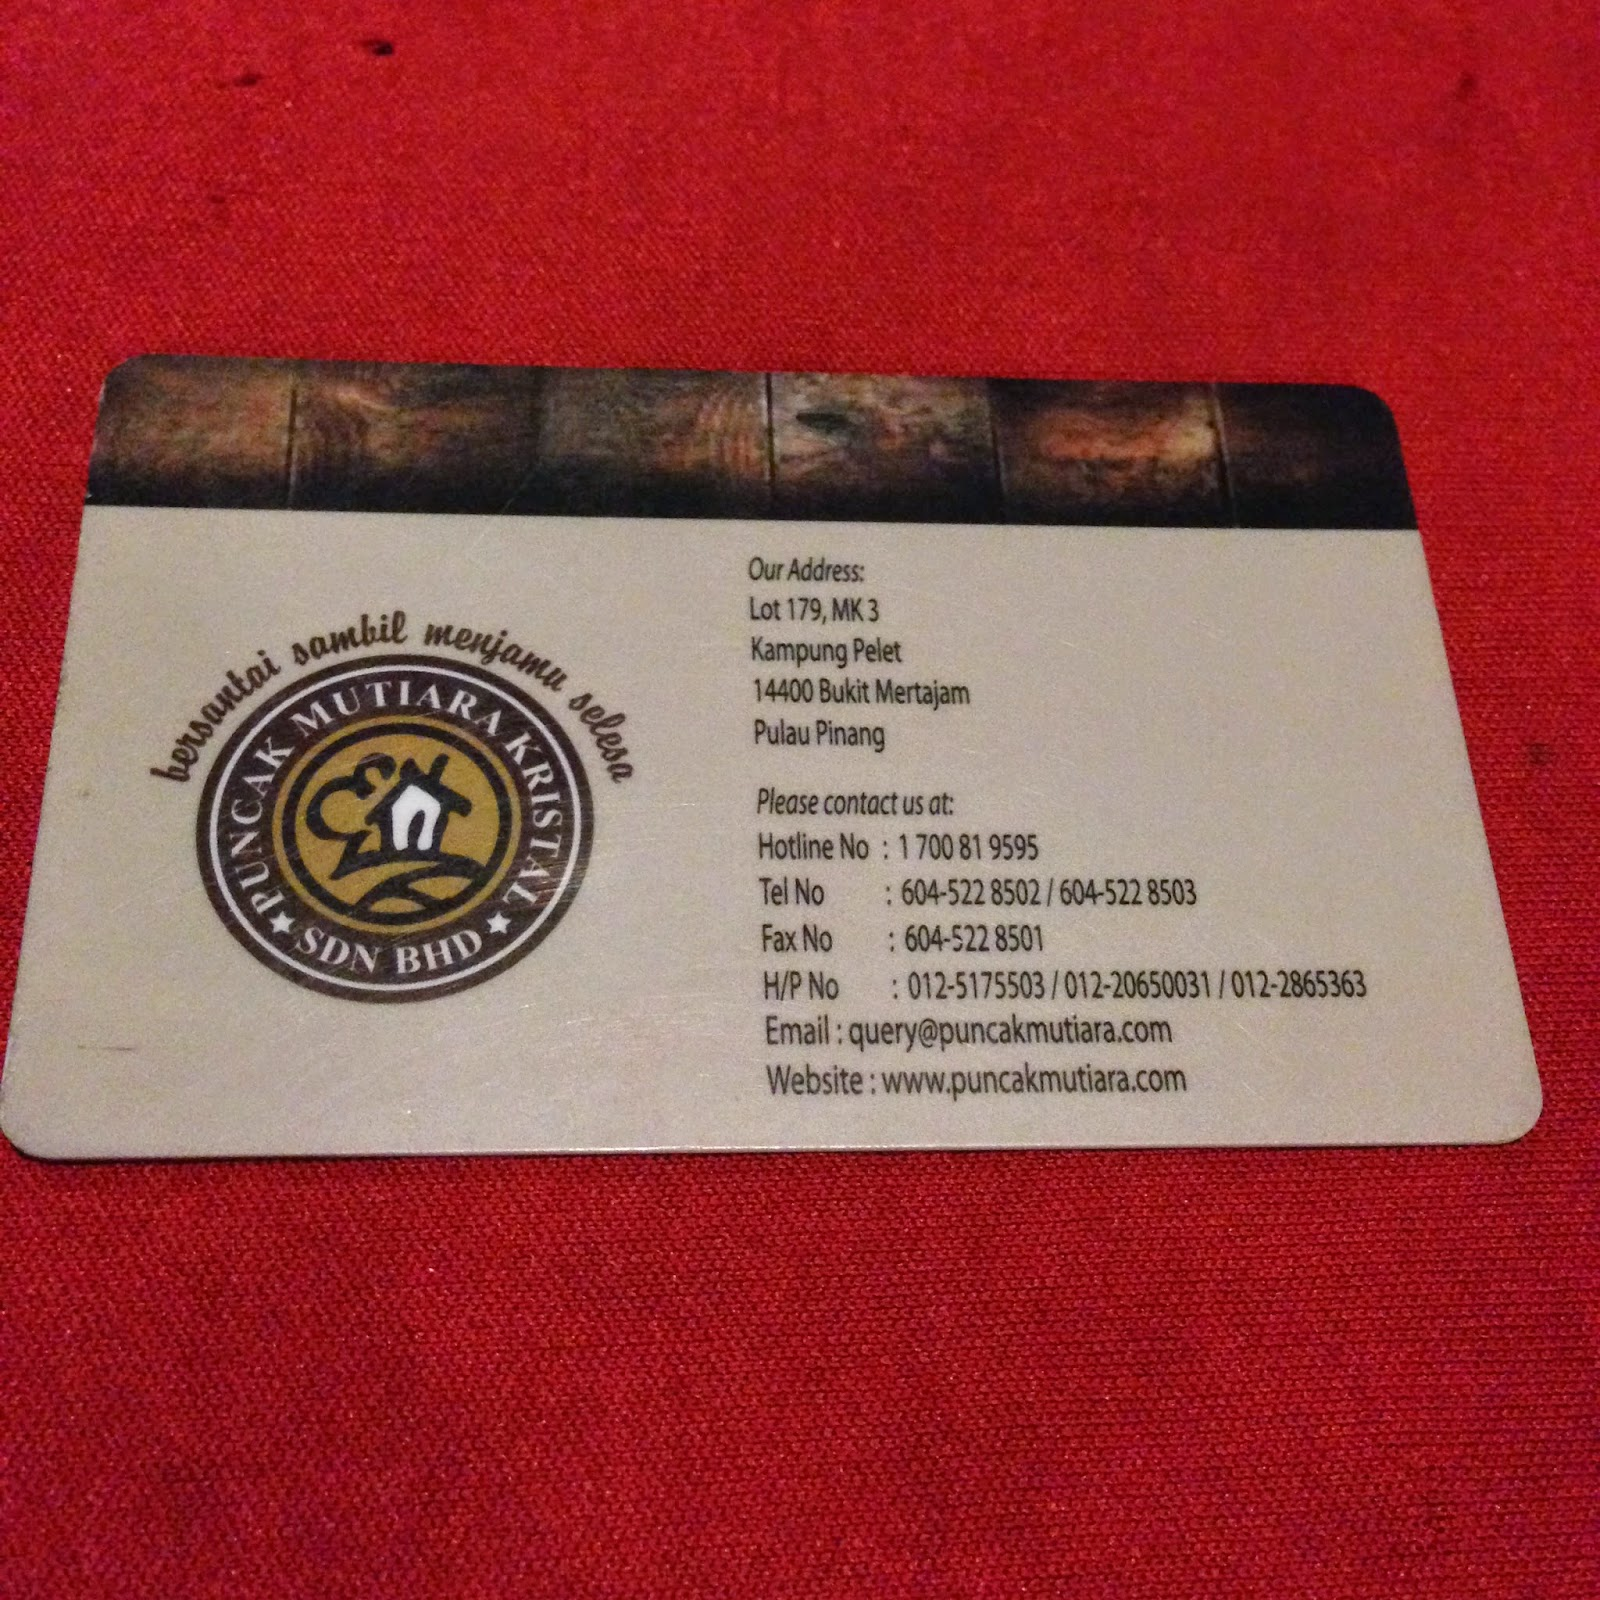 Puncak Mutiara Cafe card